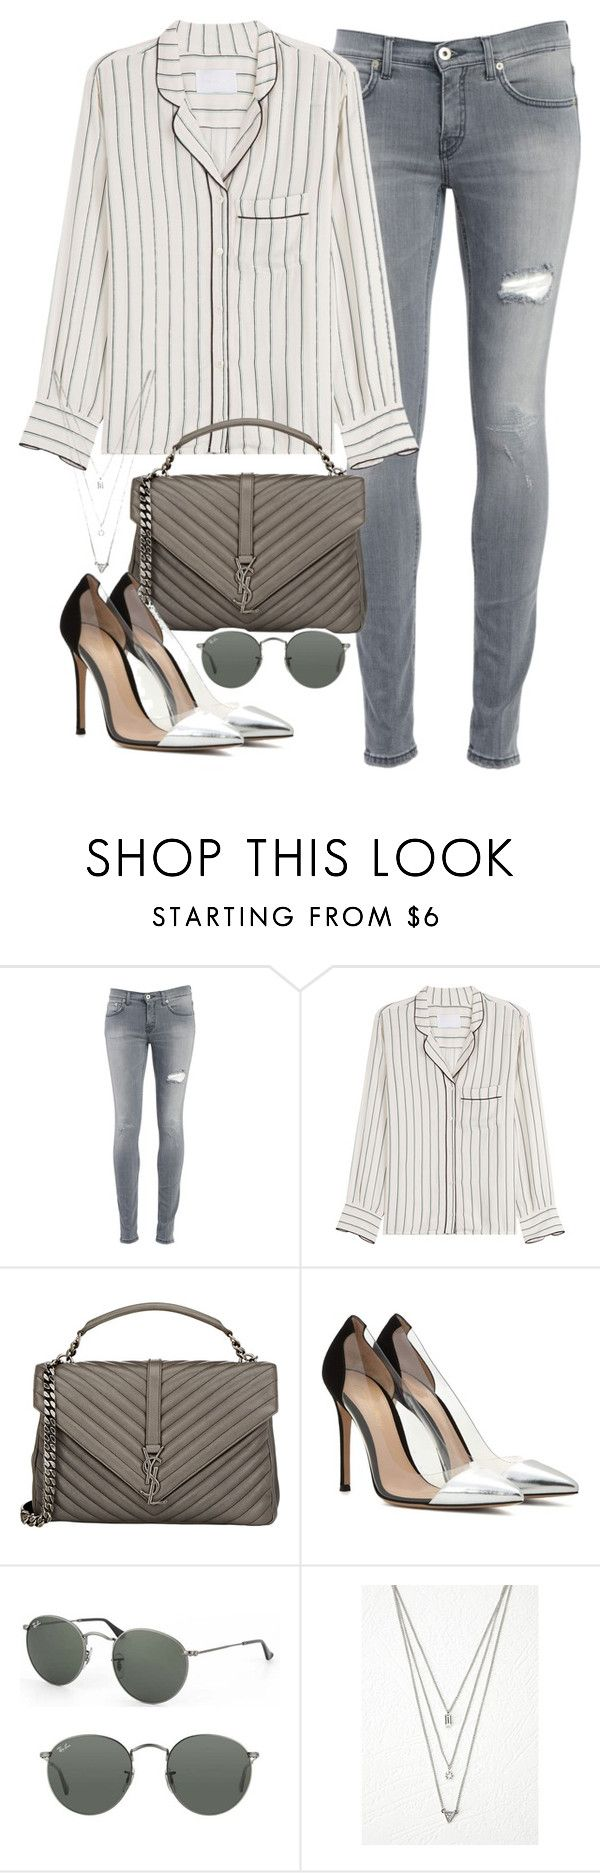 """Sin título #1721"" by camila-echi ❤ liked on Polyvore featuring Dondup, Zadig & Voltaire, Yves Saint Laurent, Gianvito Rossi, Ray-Ban and Forever 21"